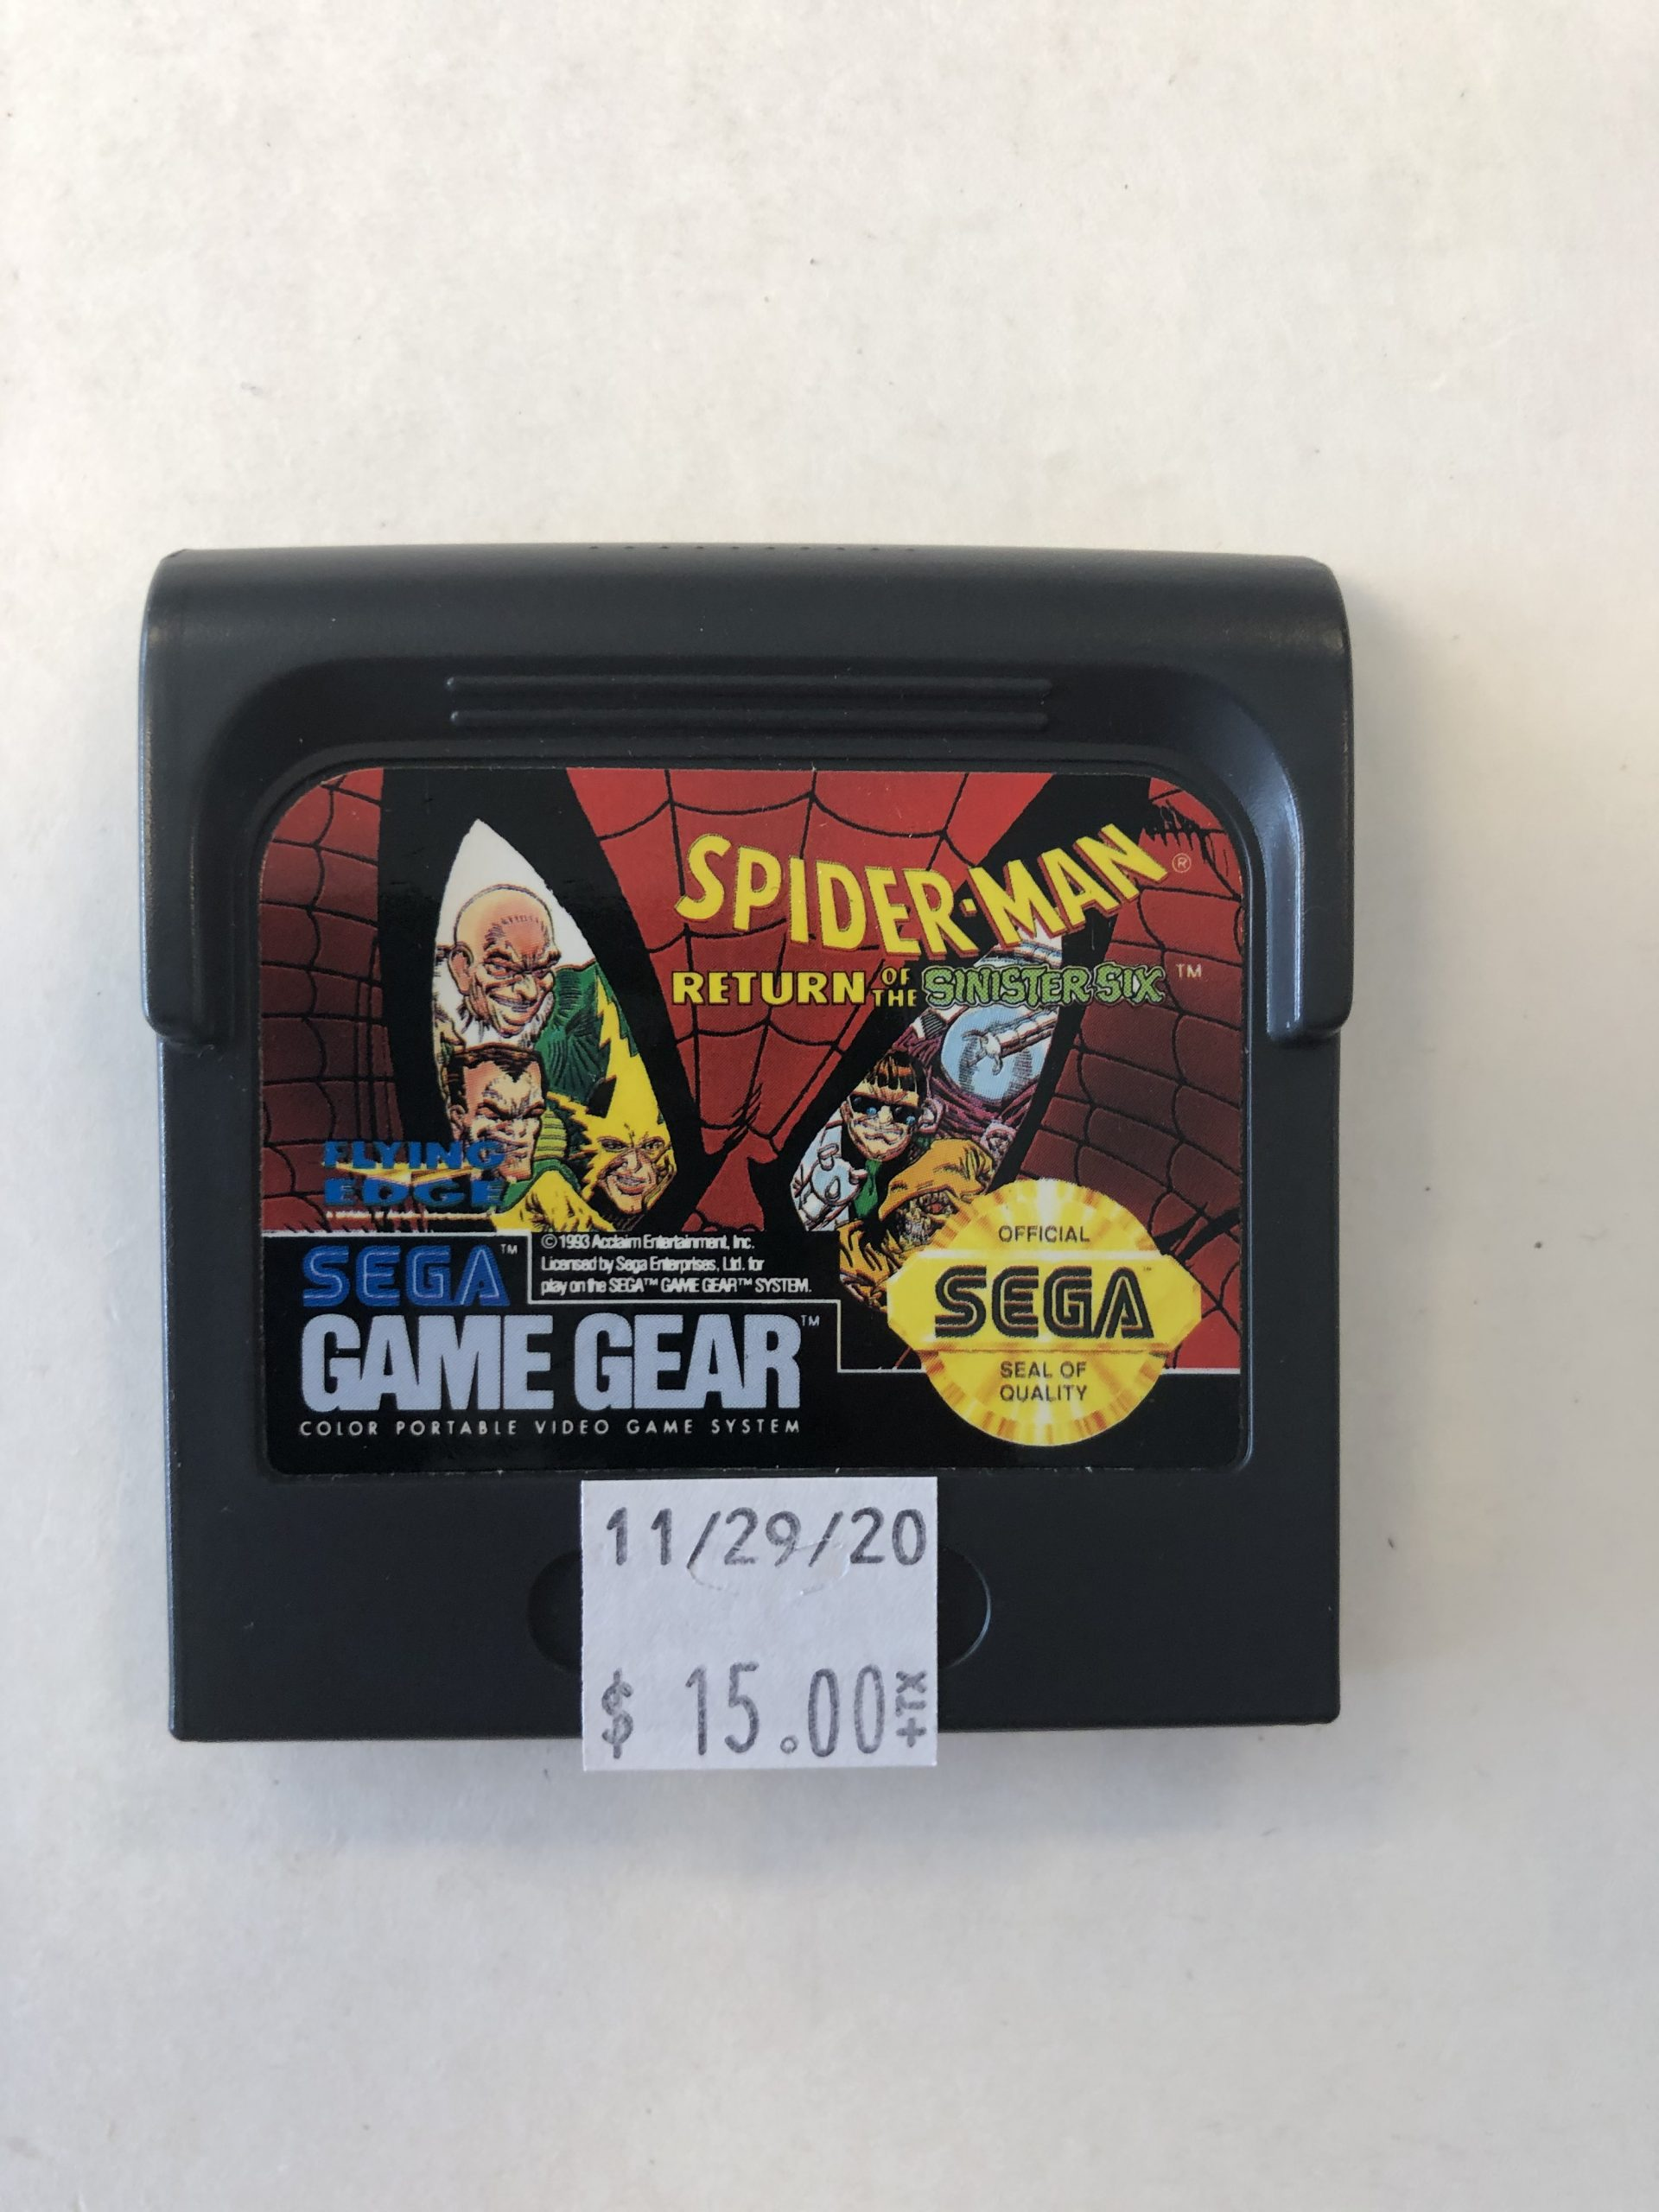 Spiderman Return Of The Sinister Six Cartridge Game Gear